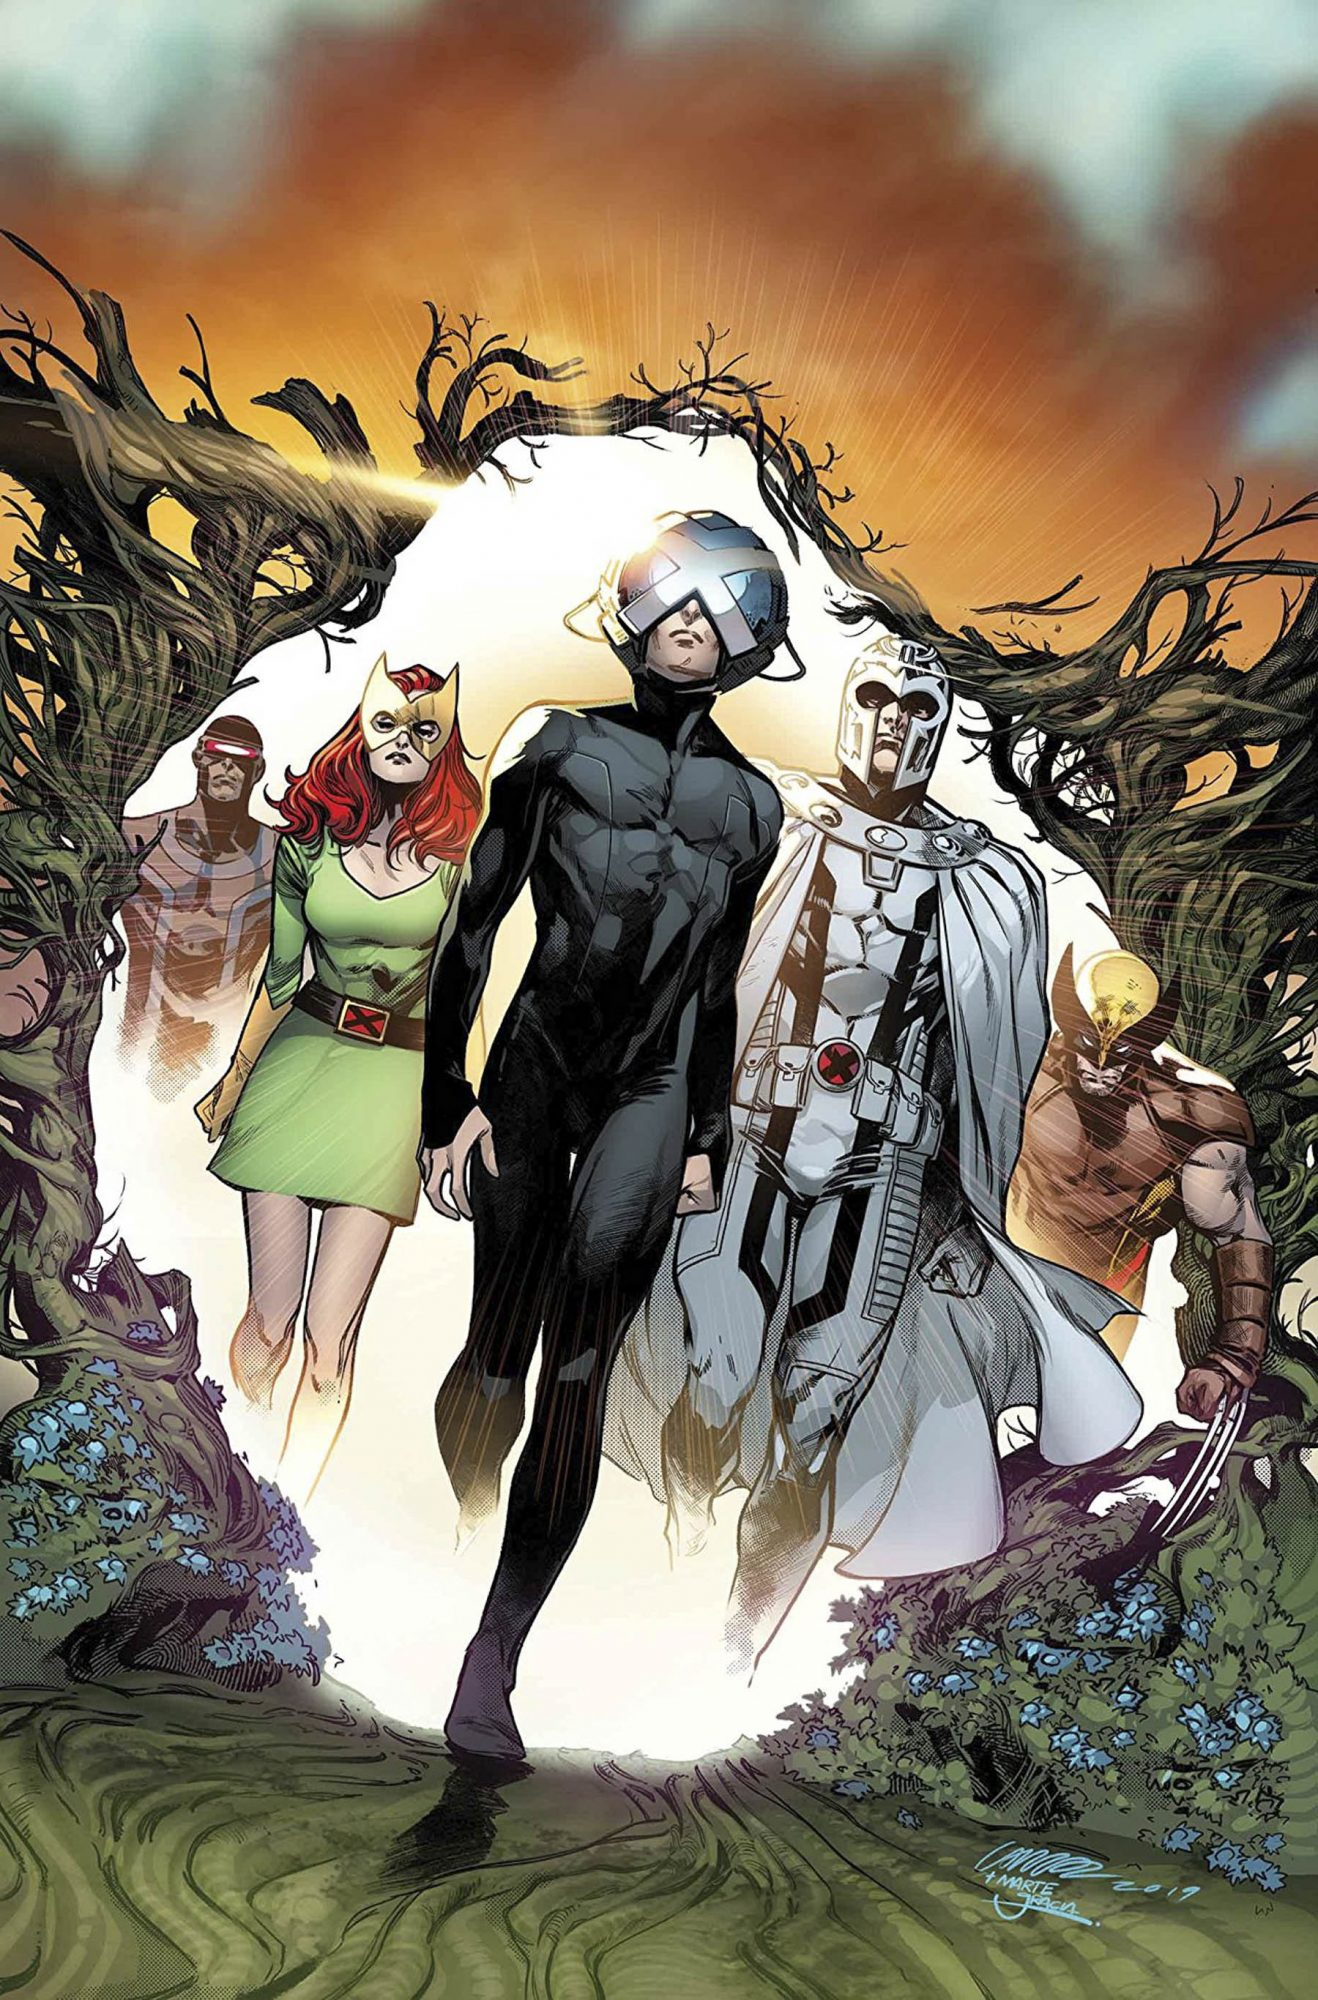 House Of X (2019-) #1 (of 6): Director's Cut CR: Marvel